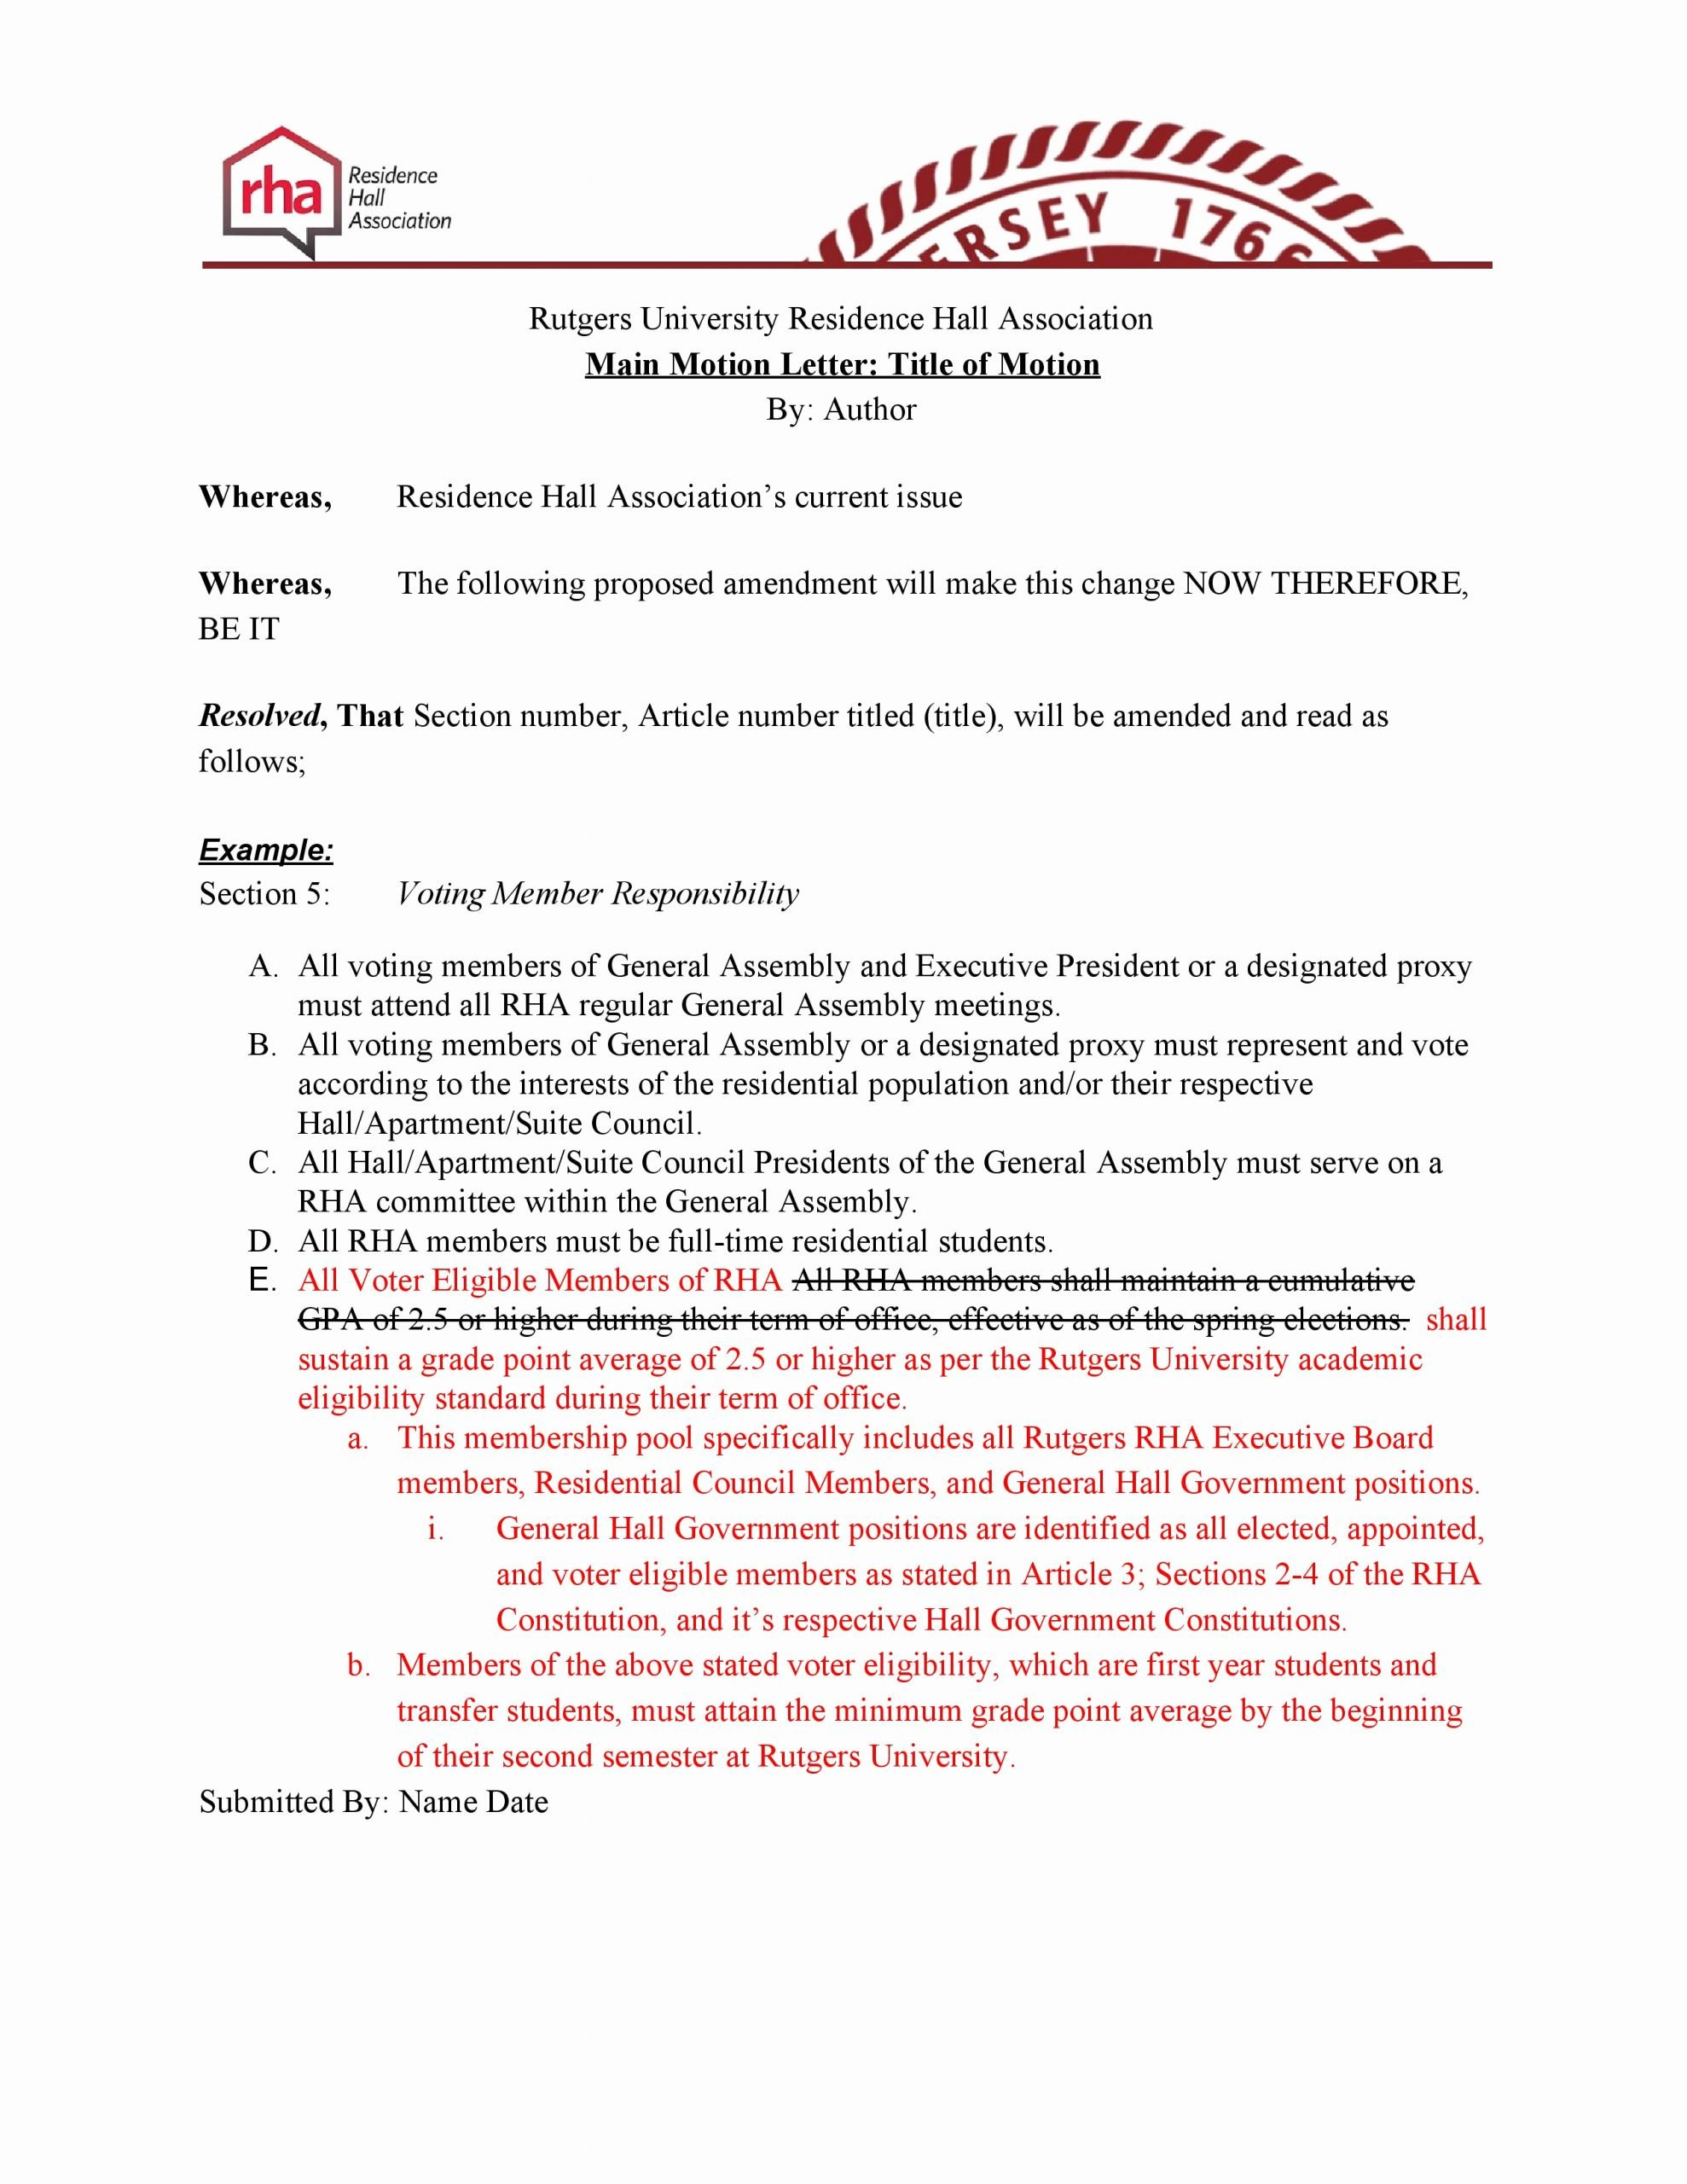 Bill Proposal Example Best Of Legislation Template – Residence Hall association